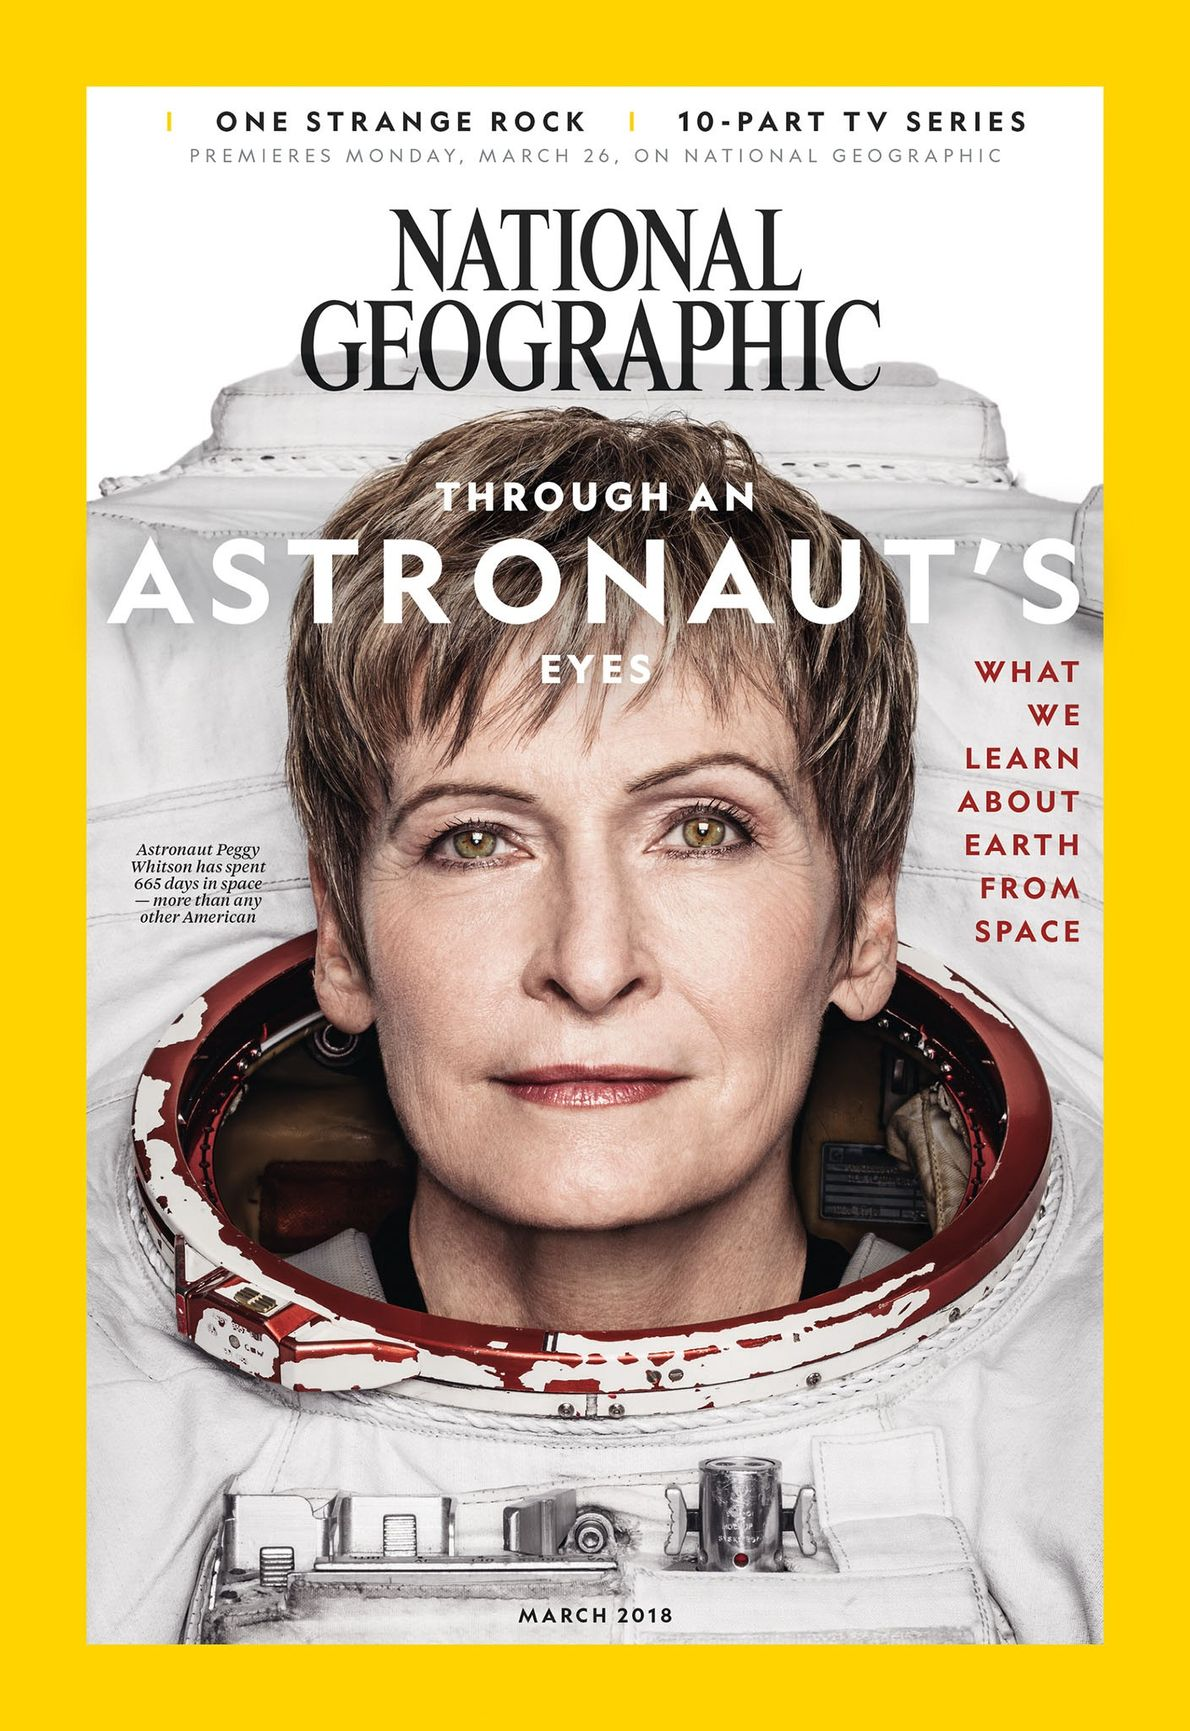 March 2018: Astronaut Peggy Whitson holds the U.S. record for days spent in space (665).